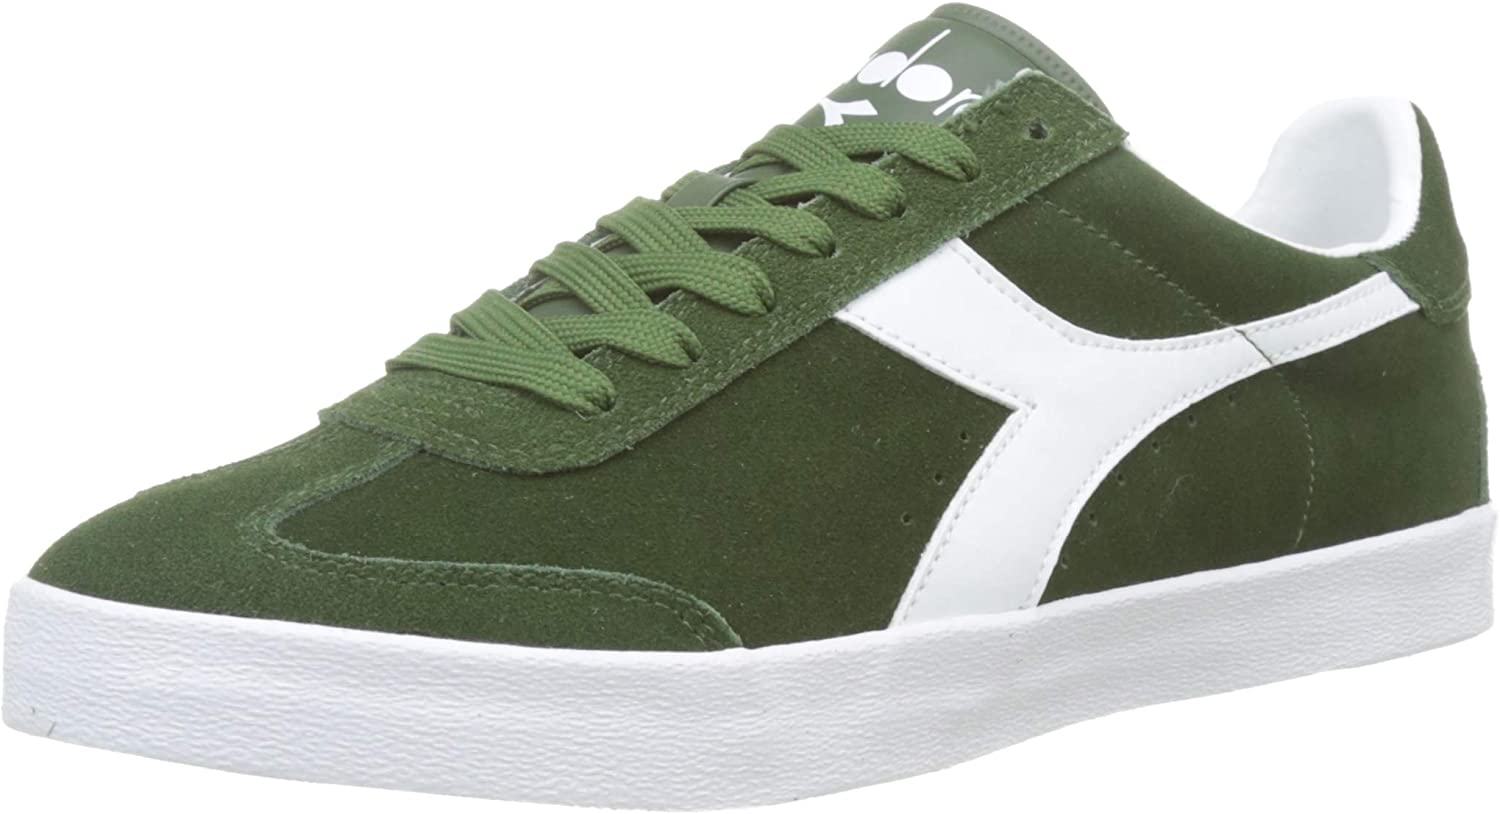 Diadora Unisex Adults' Pitch Trainers